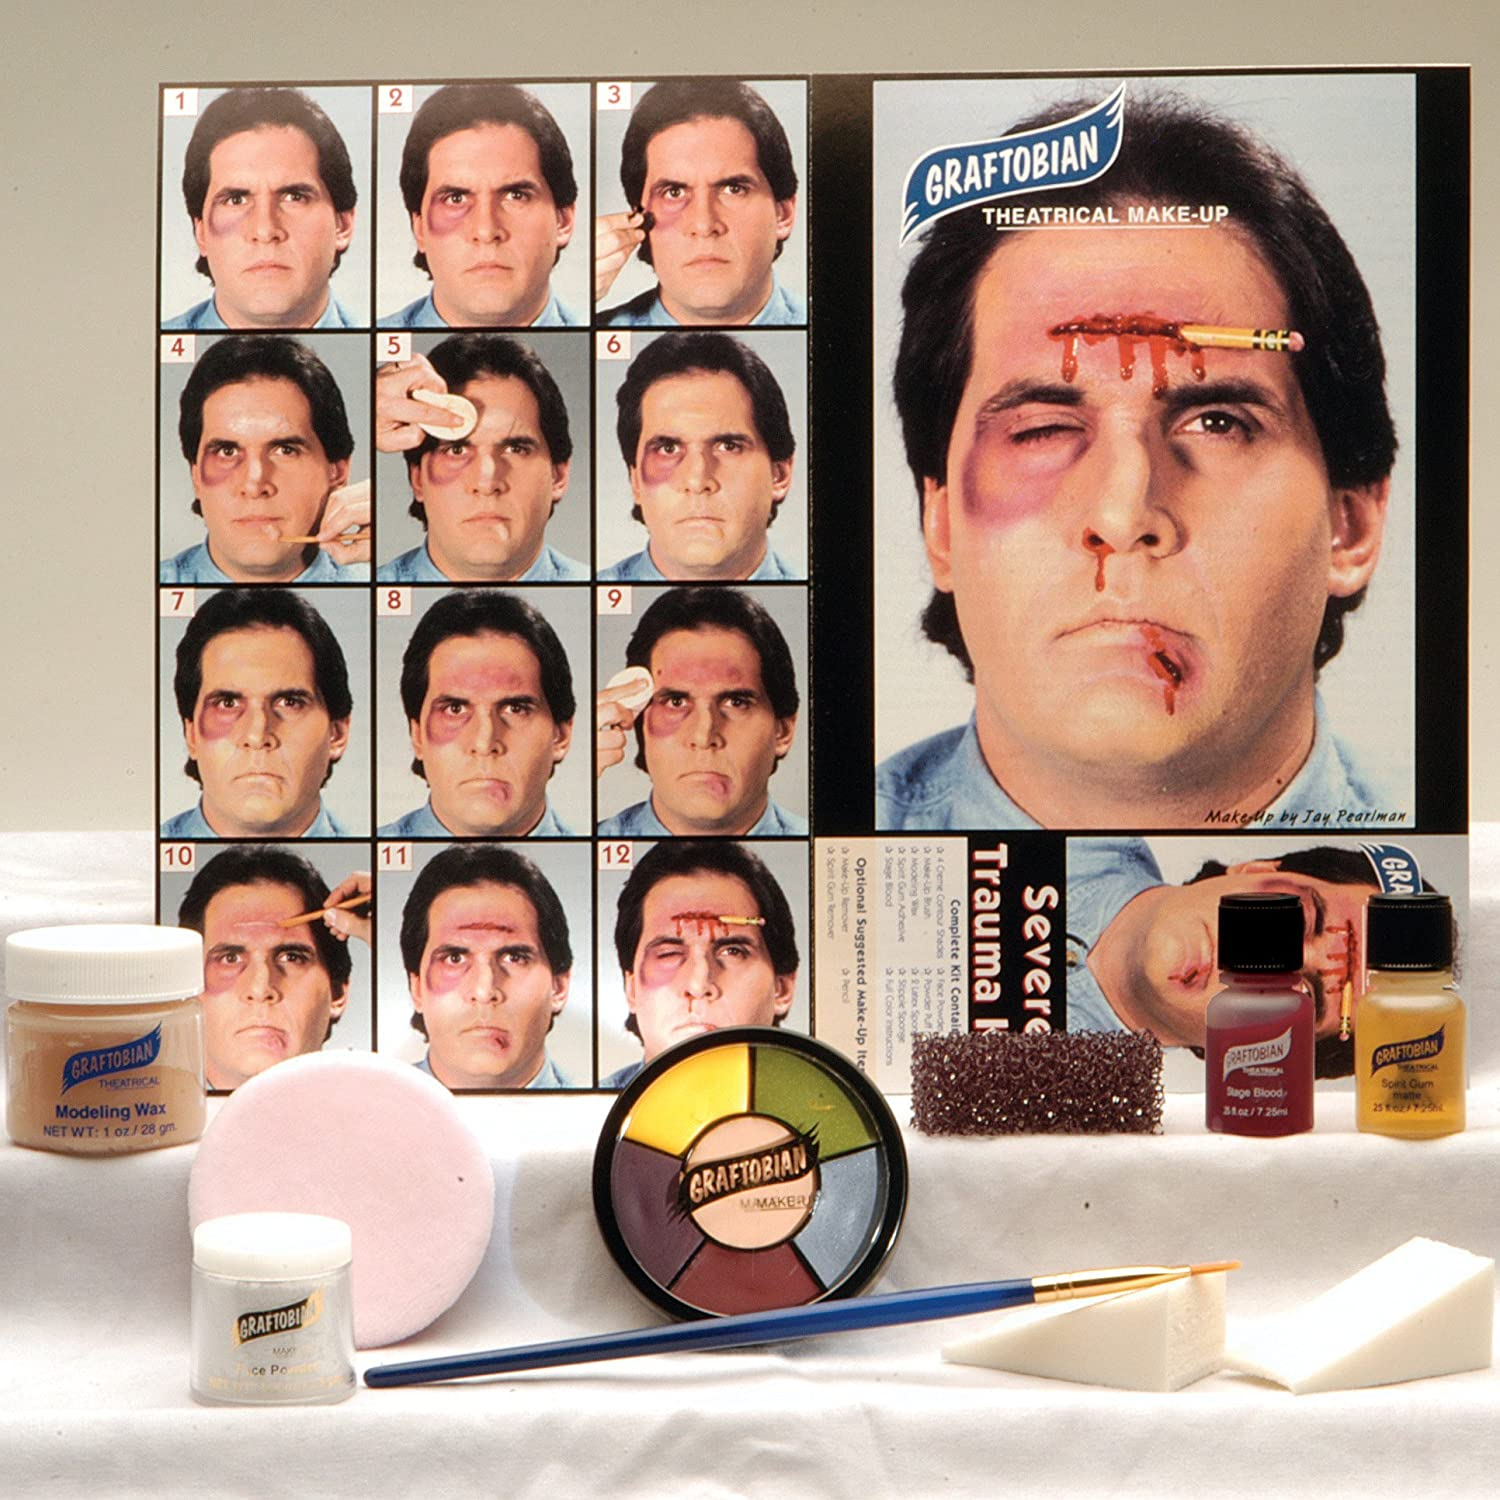 Graftobian 181575 Severe Trauma Makeup Kit 049625888549